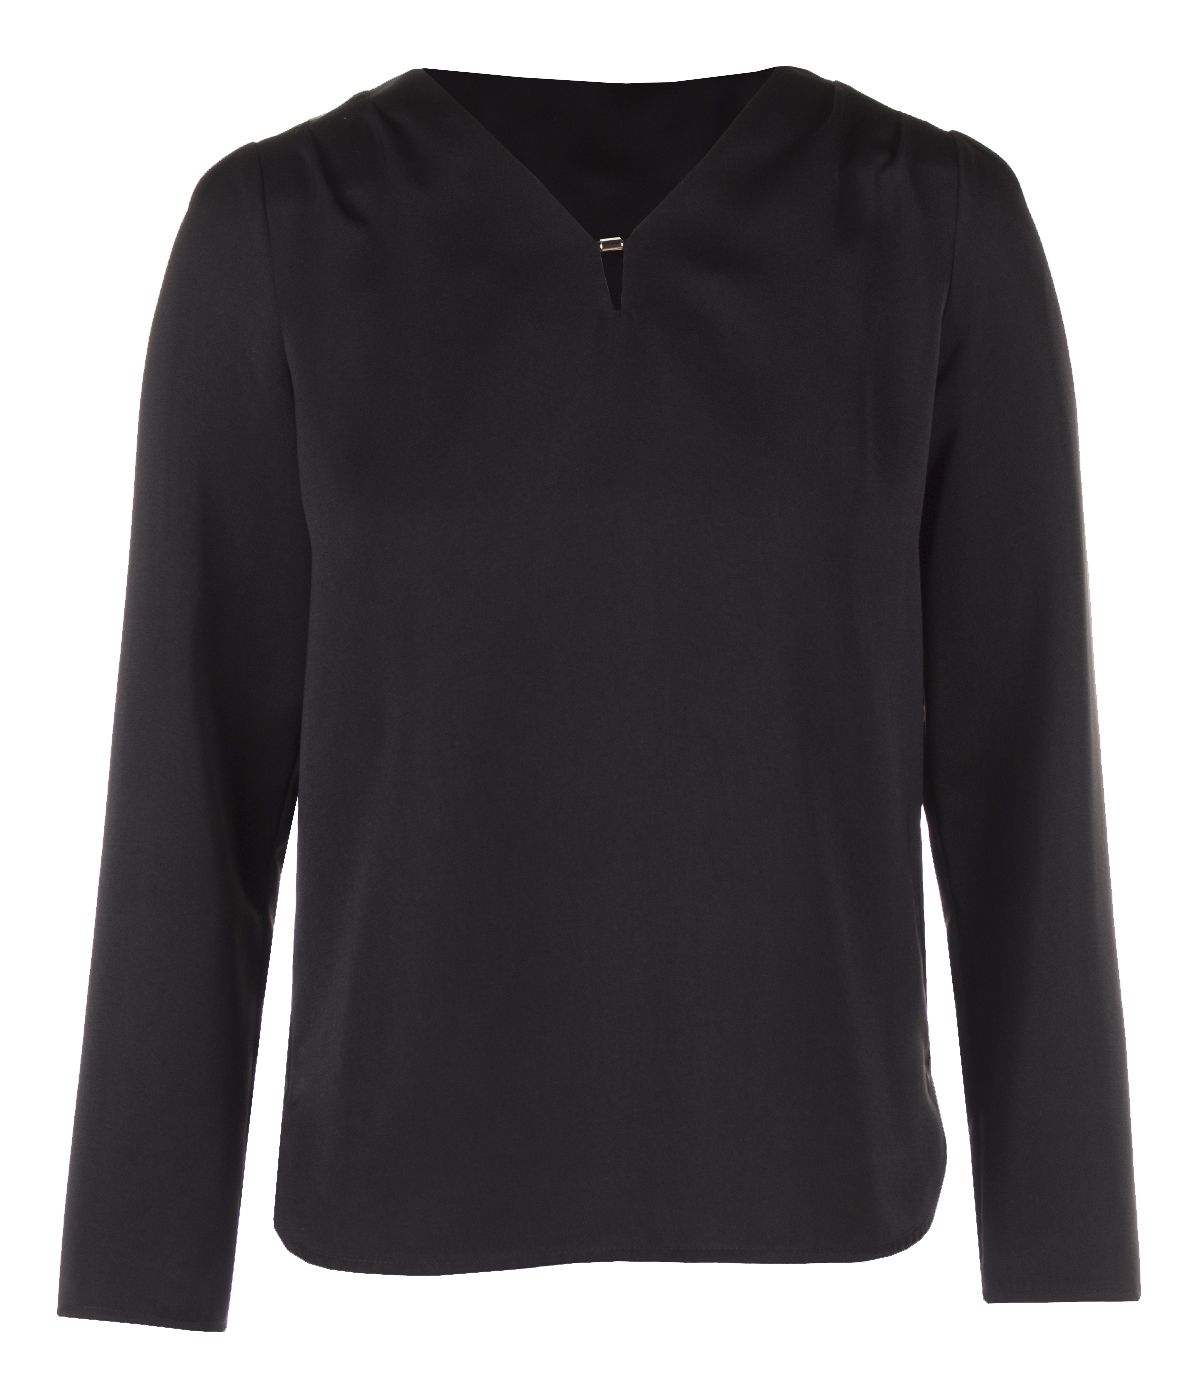 BLACK BLOUSE WITH LONG SLEEVES 0